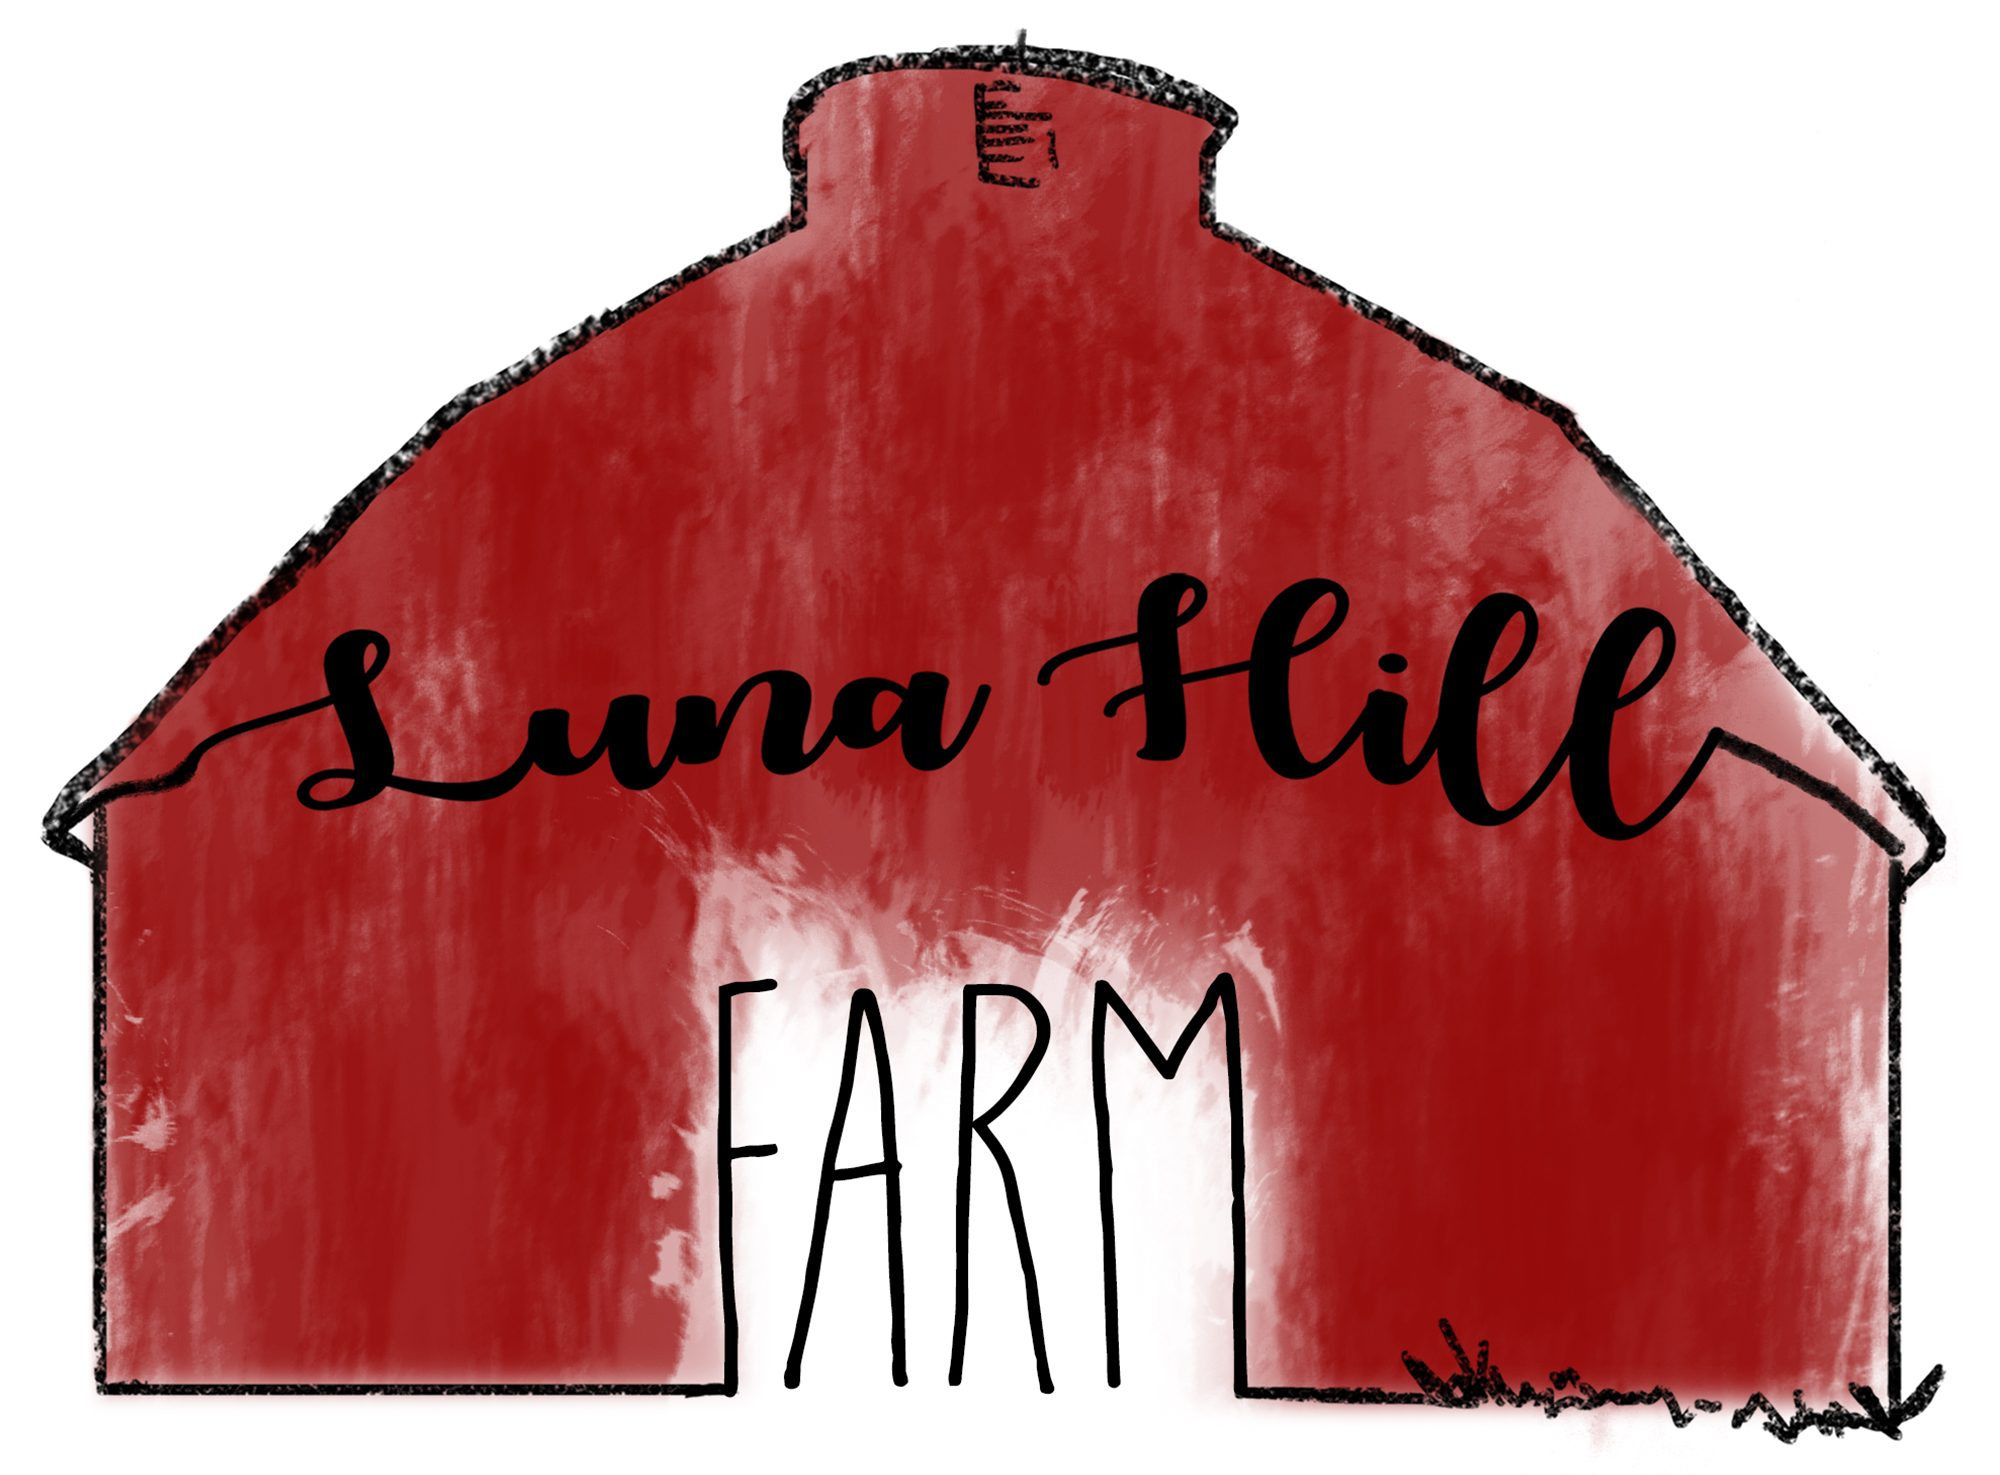 Luna Hill Farm